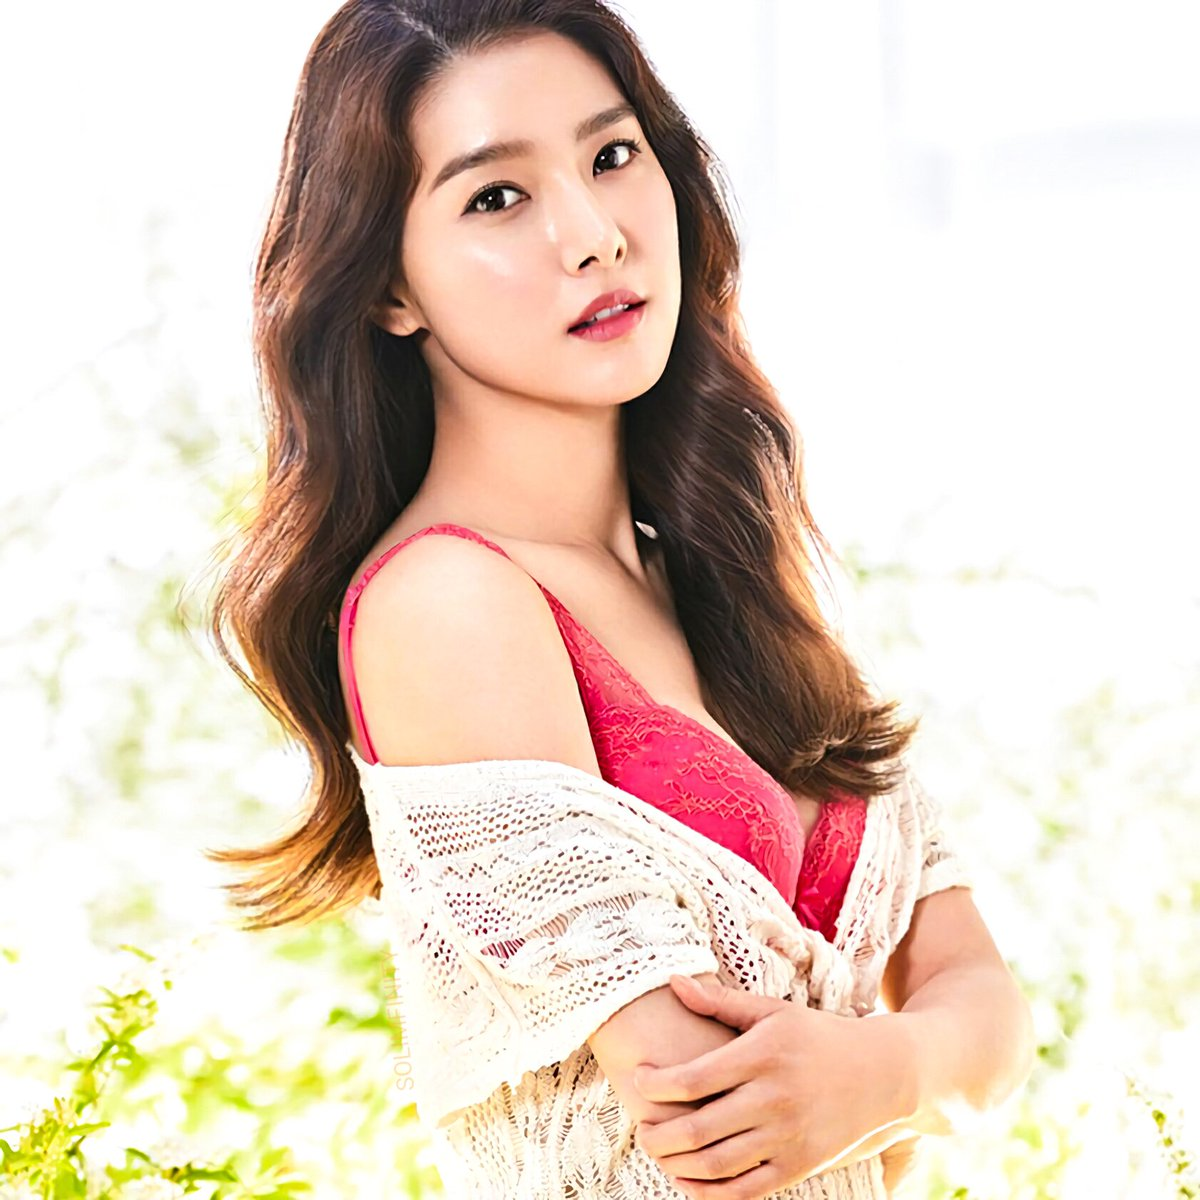 Dating Korean Women: Whatever You Want To Discover